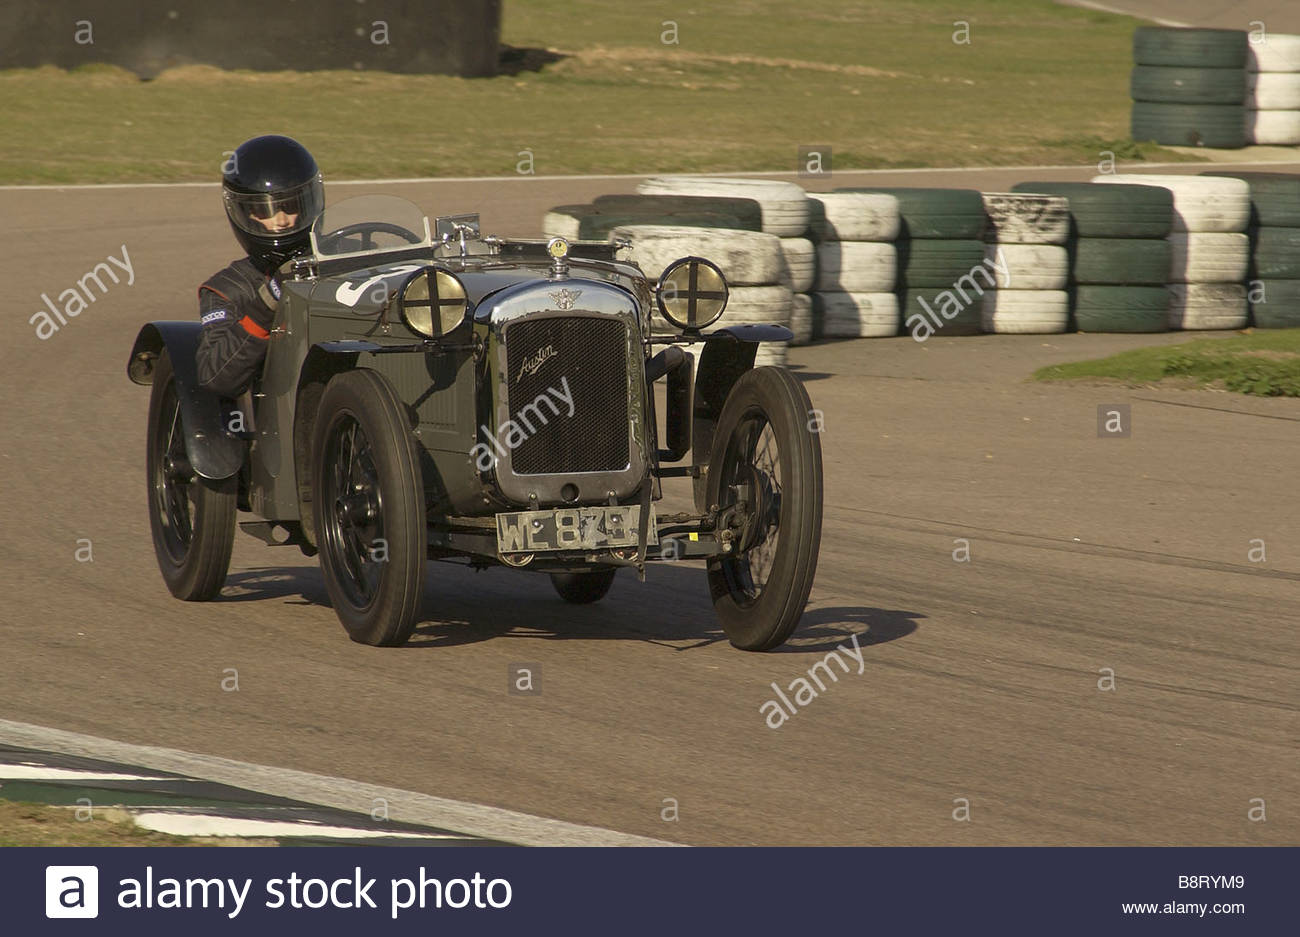 Vintage Pre War Austin Sports Car on a Summers Day in England - Stock Image